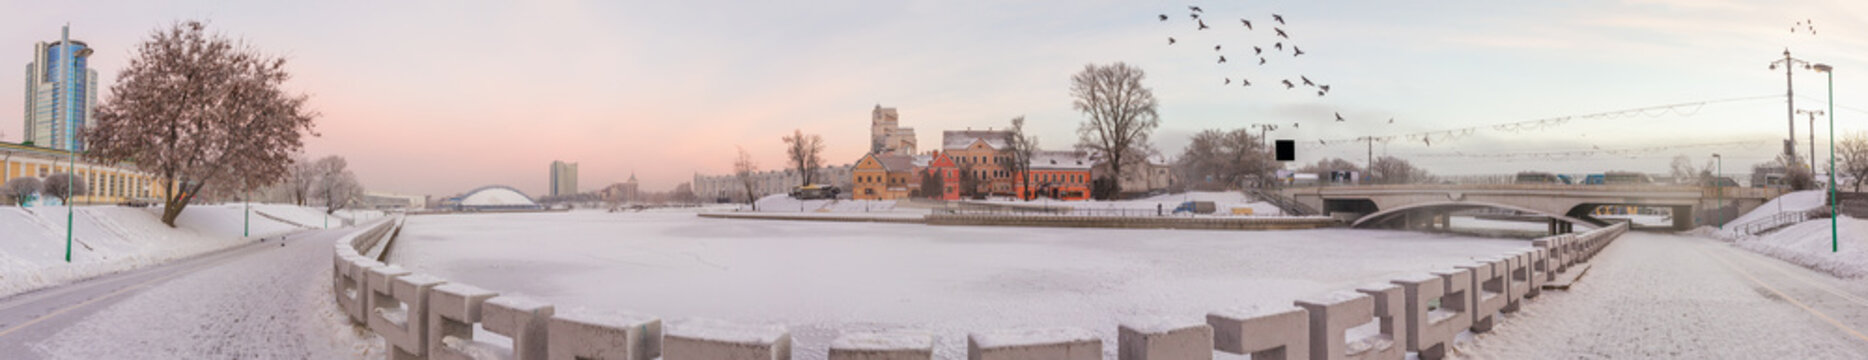 Big panorama of the historical center of Minsk in winter, Belarus